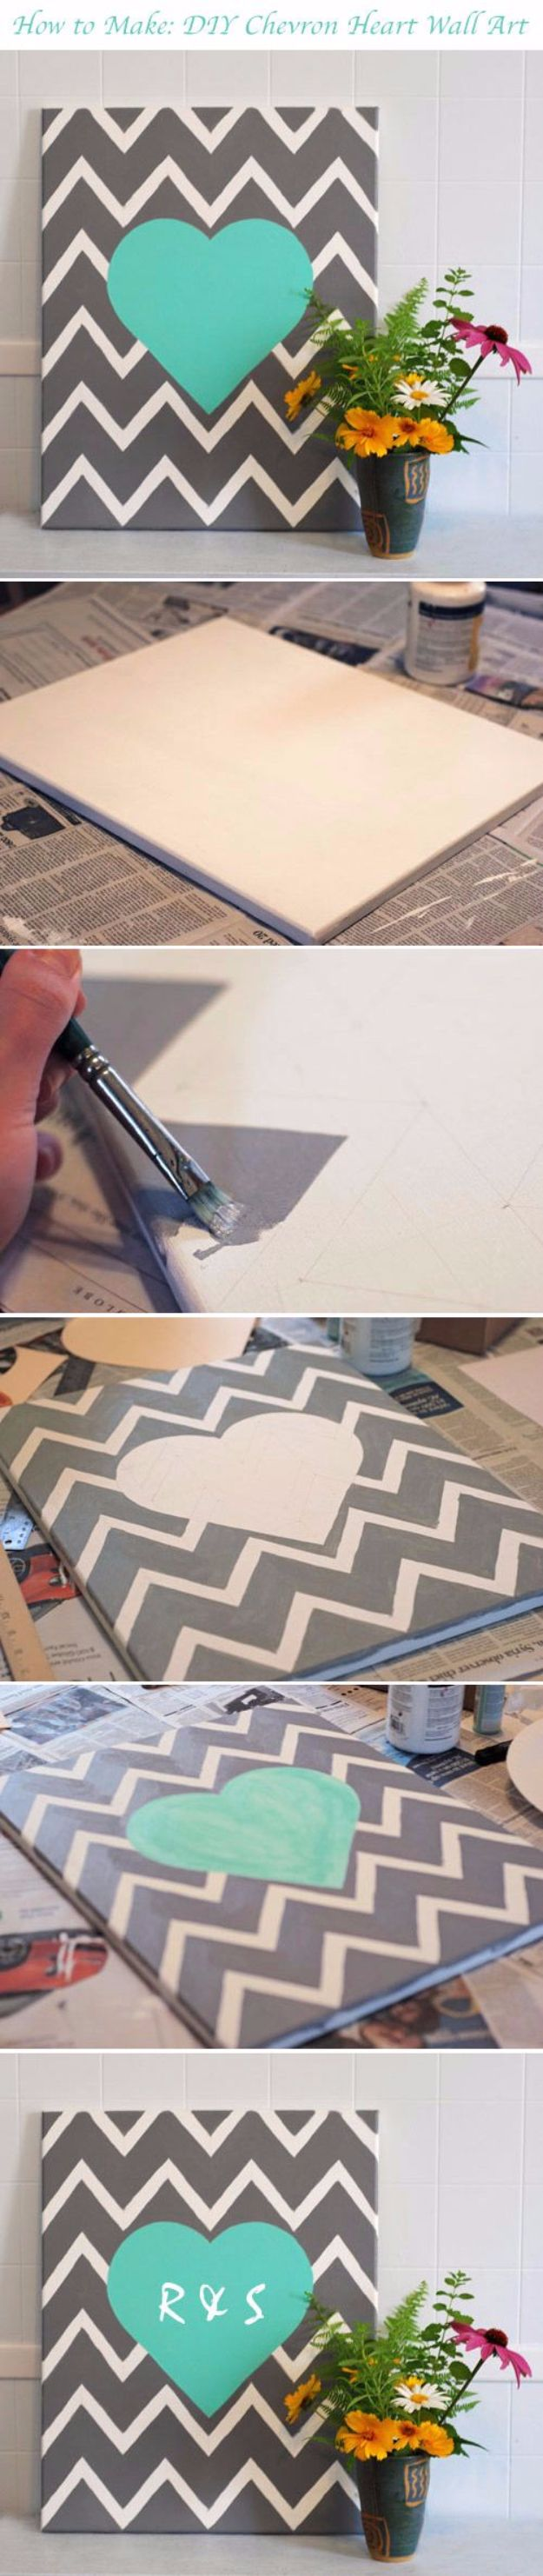 DIY Canvas Painting Ideas - DIY Chevron Heart - Cool and Easy Wall Art Ideas You Can Make On A Budget #painting #diyart #diygifts